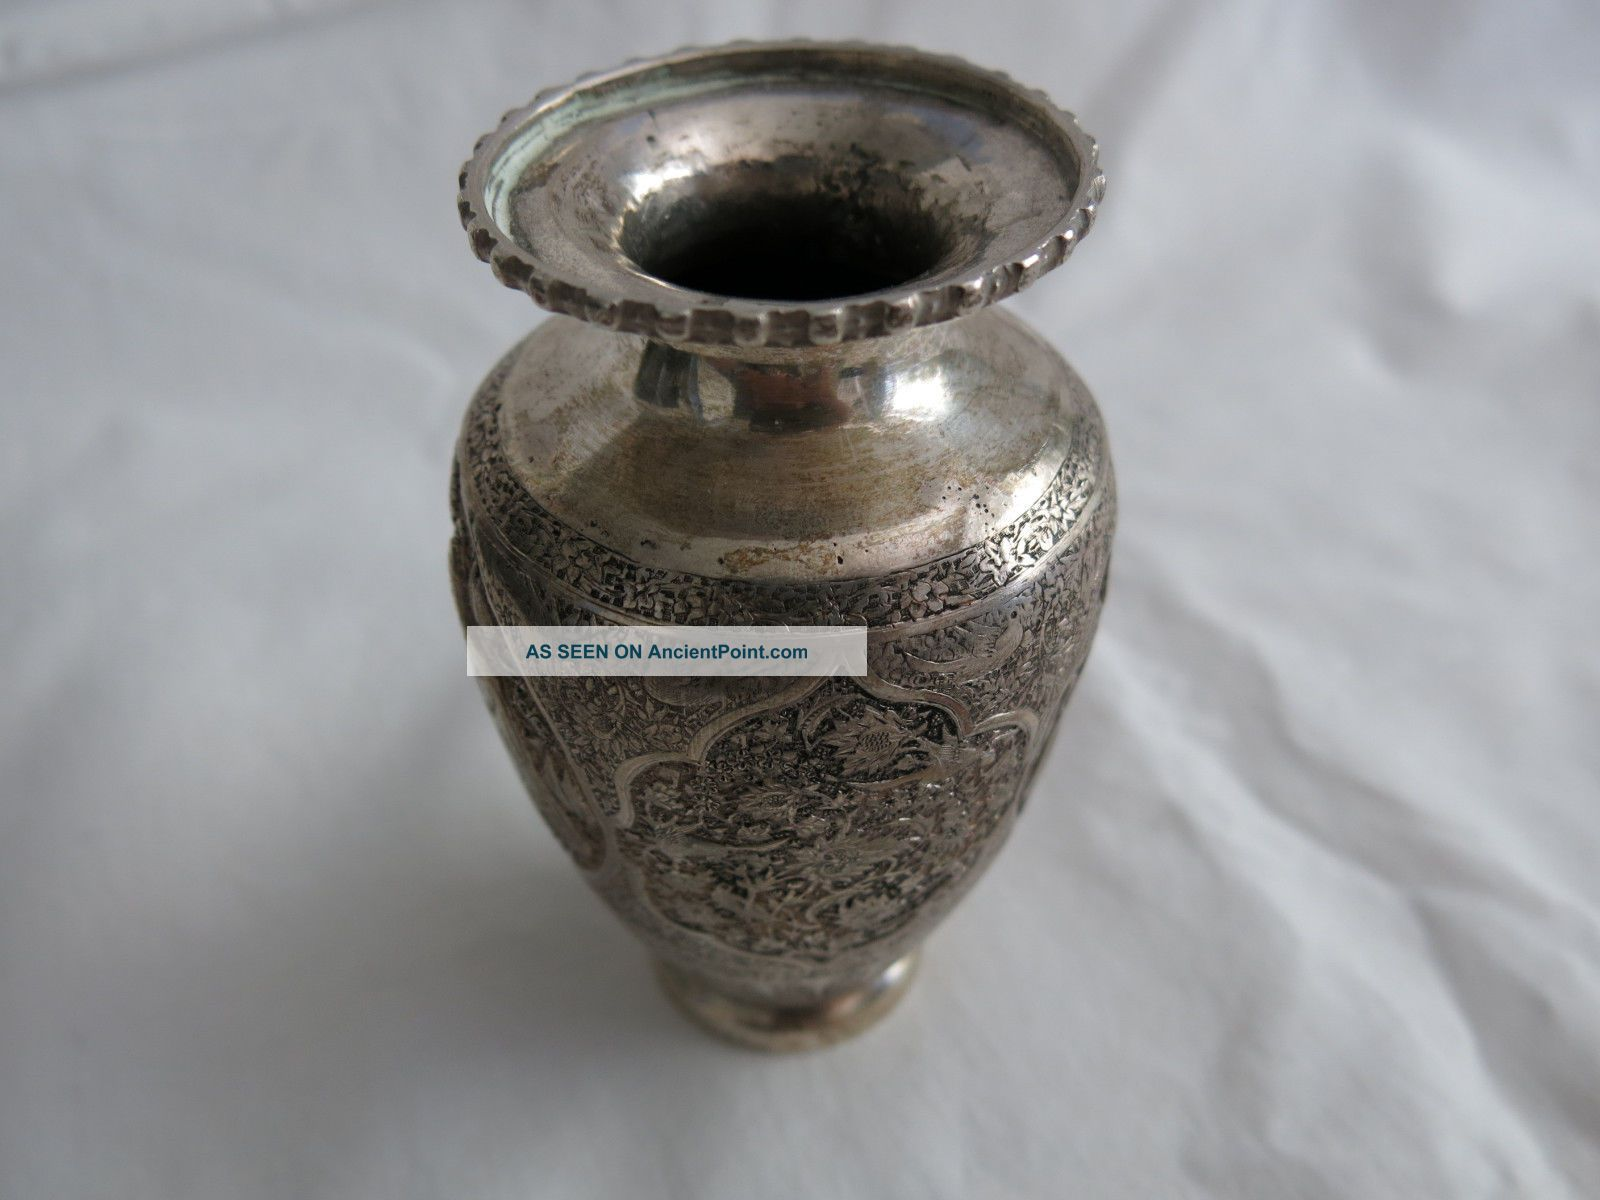 Vintage Persian Ottoman Islamic Sterling Silver Vase. Middle East photo